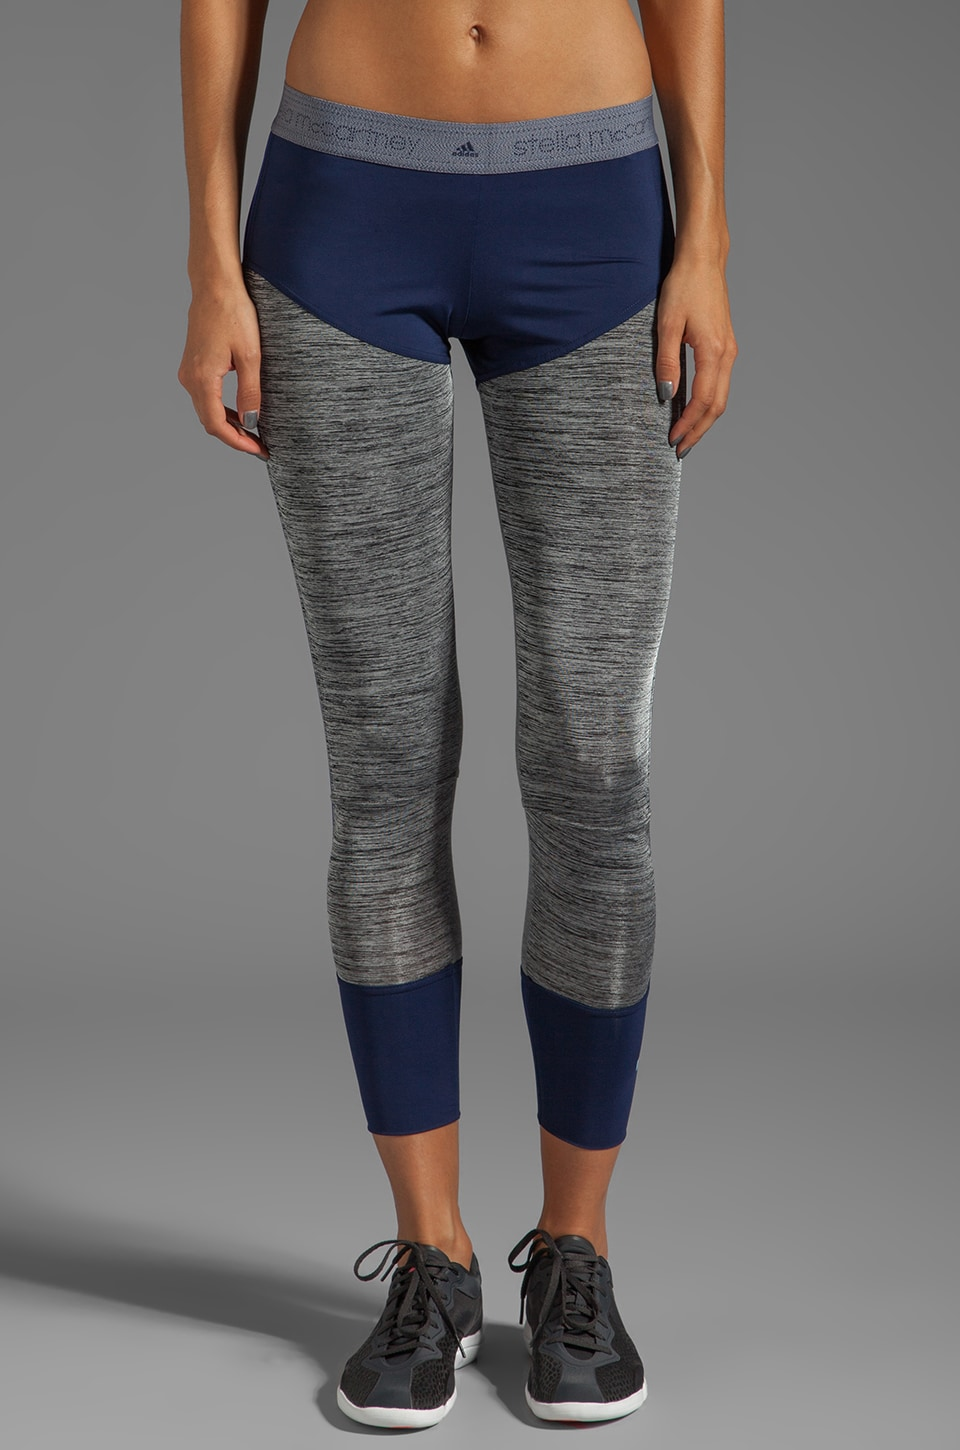 adidas by Stella McCartney Stu Long Tight Legging in Dark Ink